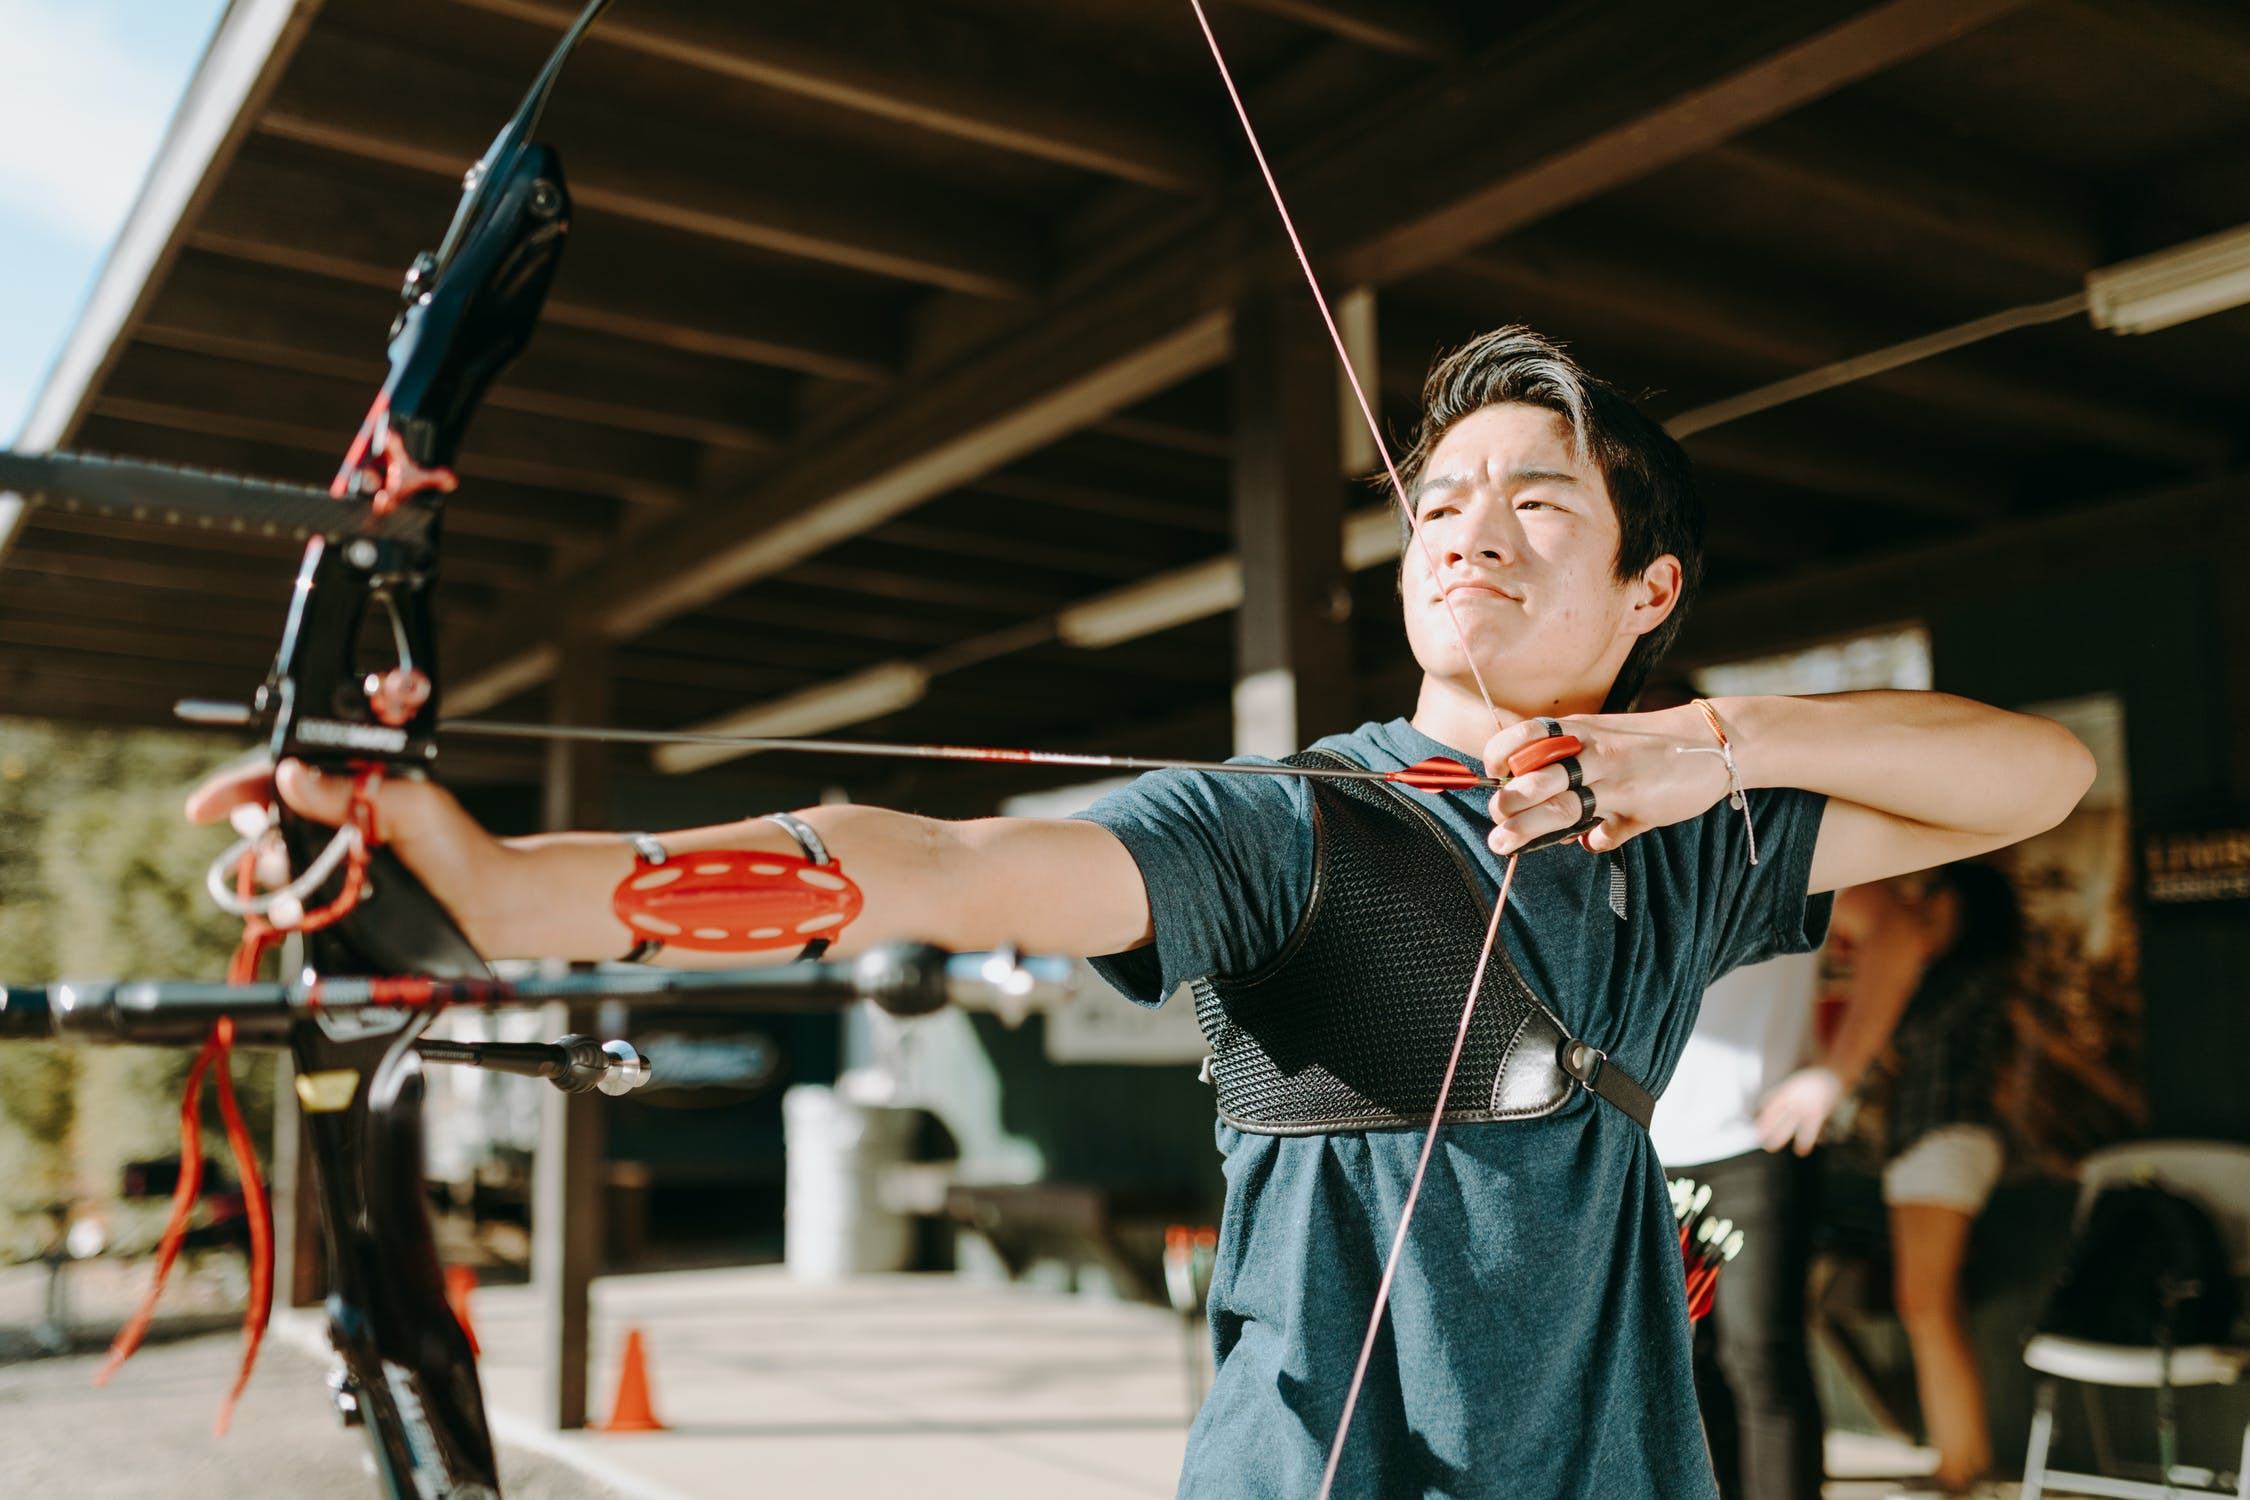 archery, yescomusa, Why Hobbies are Important